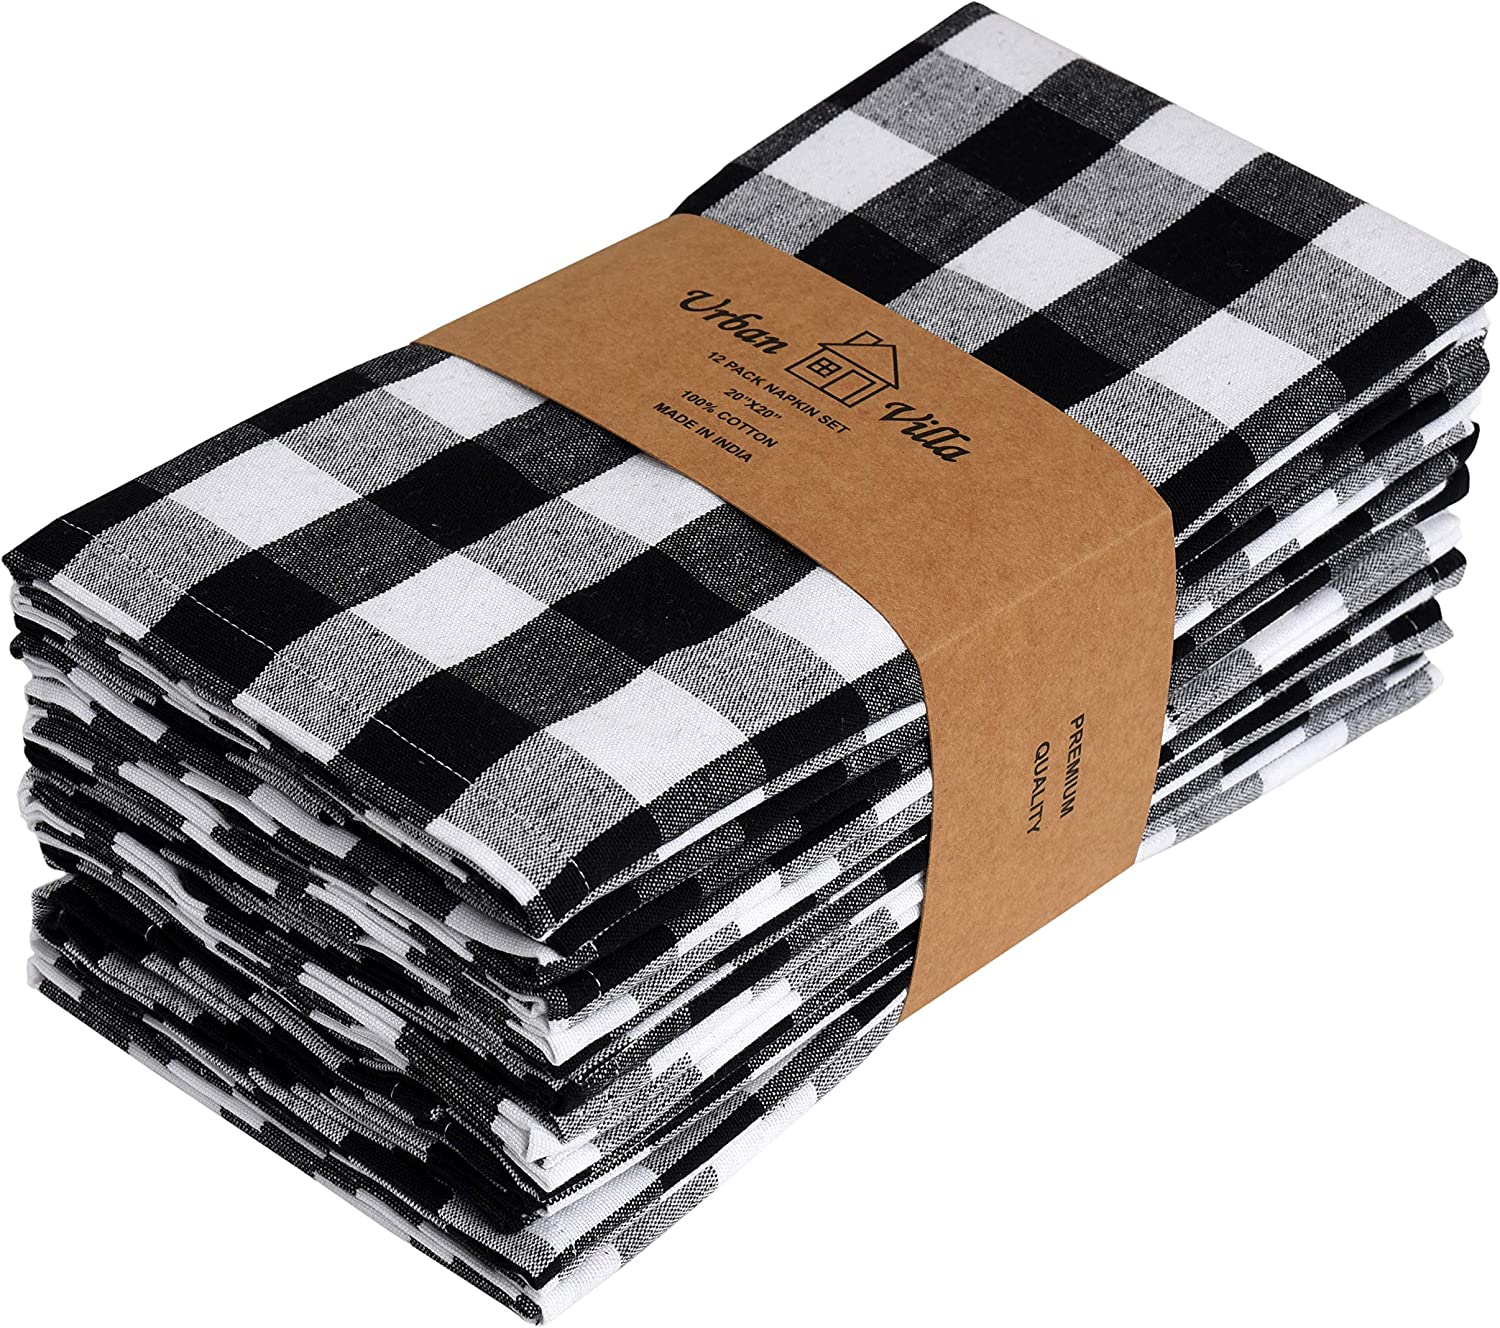 Urban Villa Dinner Napkins, Everyday Use,Premium Quality,100% Cotton, Set of 12, Size 20X20 Inch, Black/White Oversized Cloth Napkins with Mitered Corners, Ultra Soft, Durable Hotel Quality